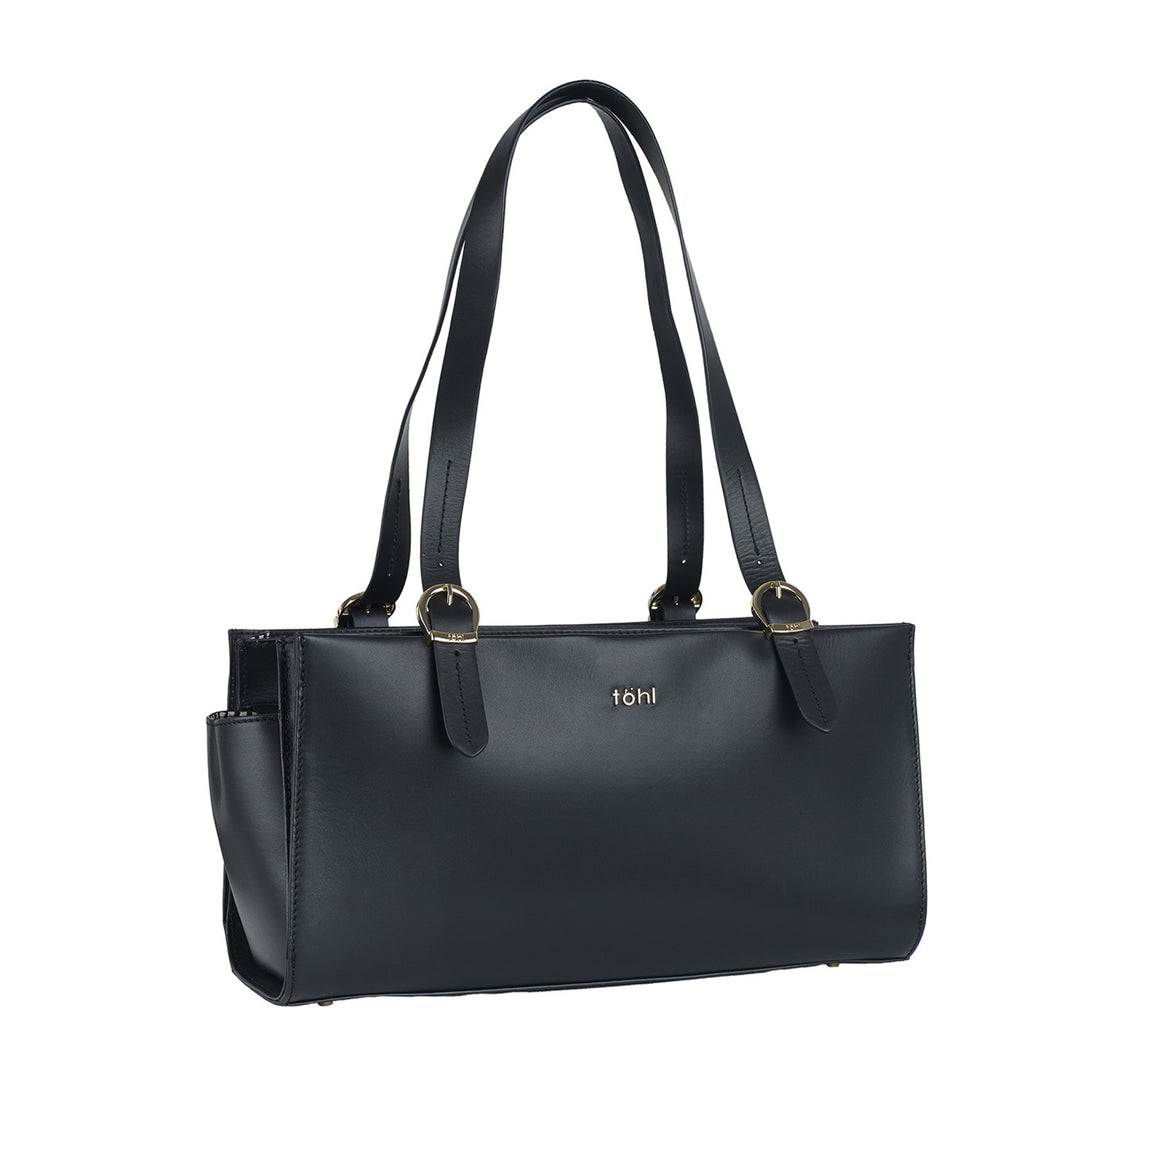 SB 0006 - TOHL CORTLAND WOMEN'S SHOULDER BAGUETTE - CHARCOAL BLACK